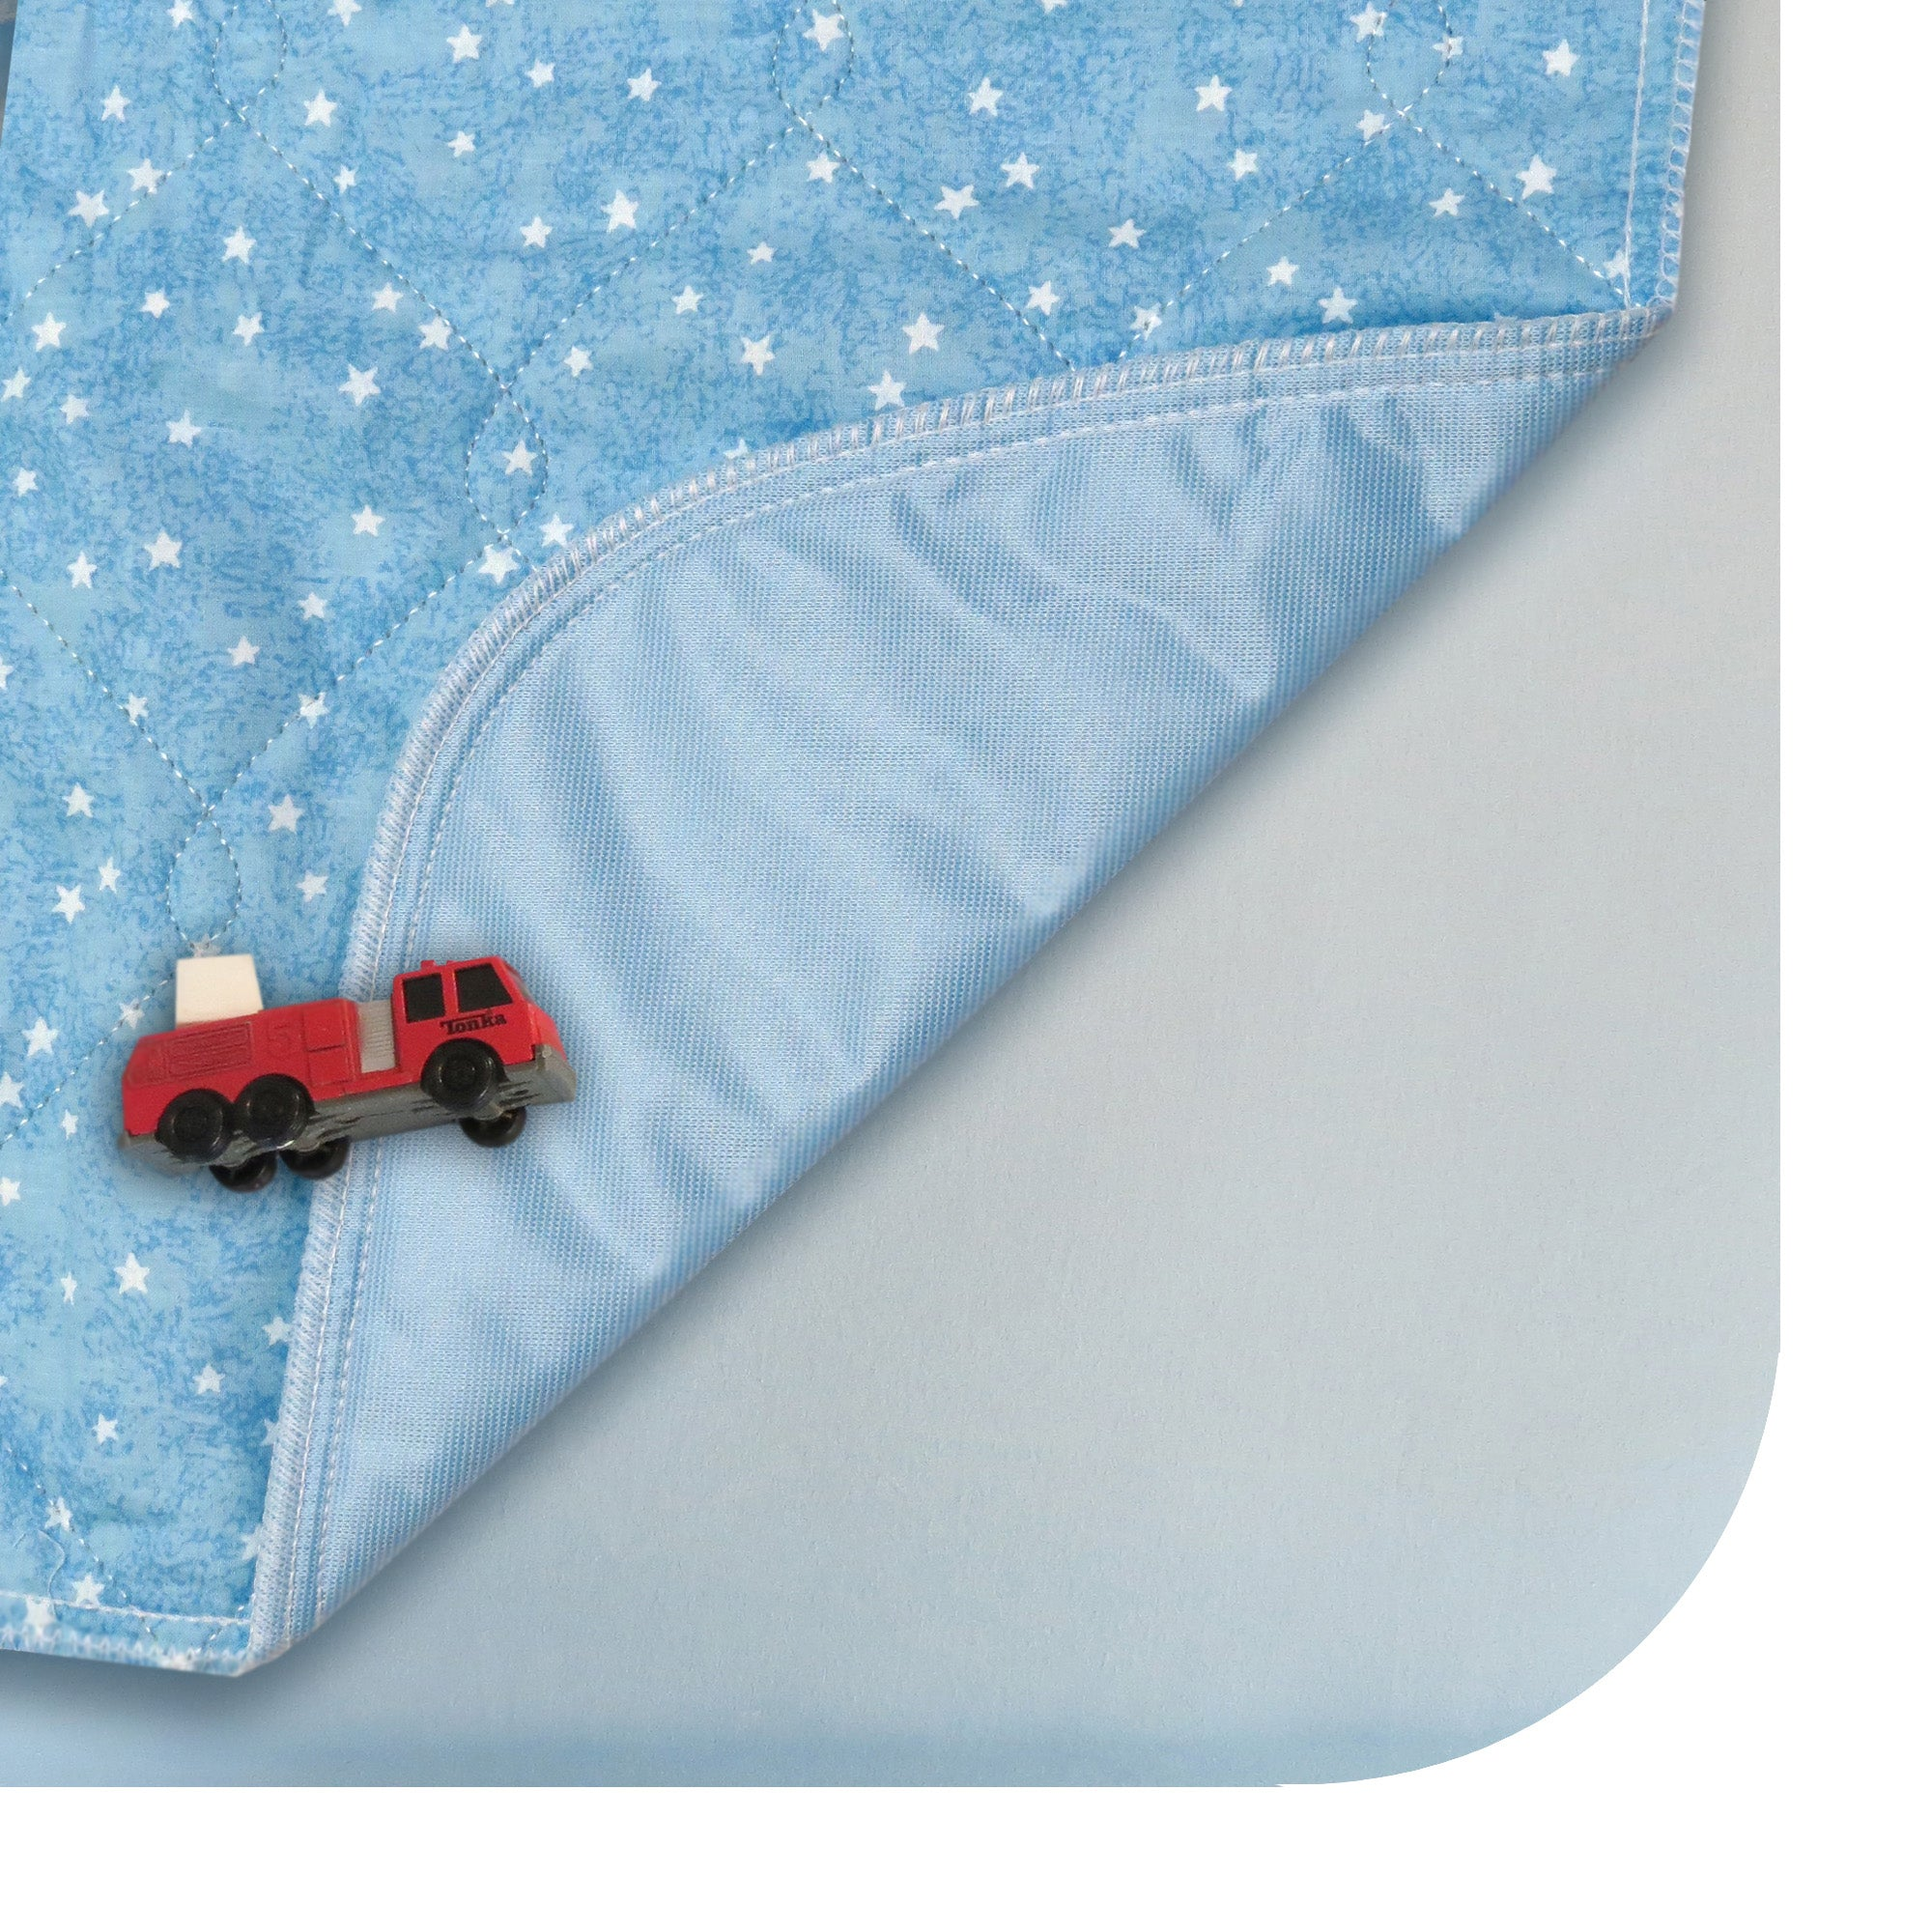 Underpads-Printed Waterproof Bed Pad - Star Pattern